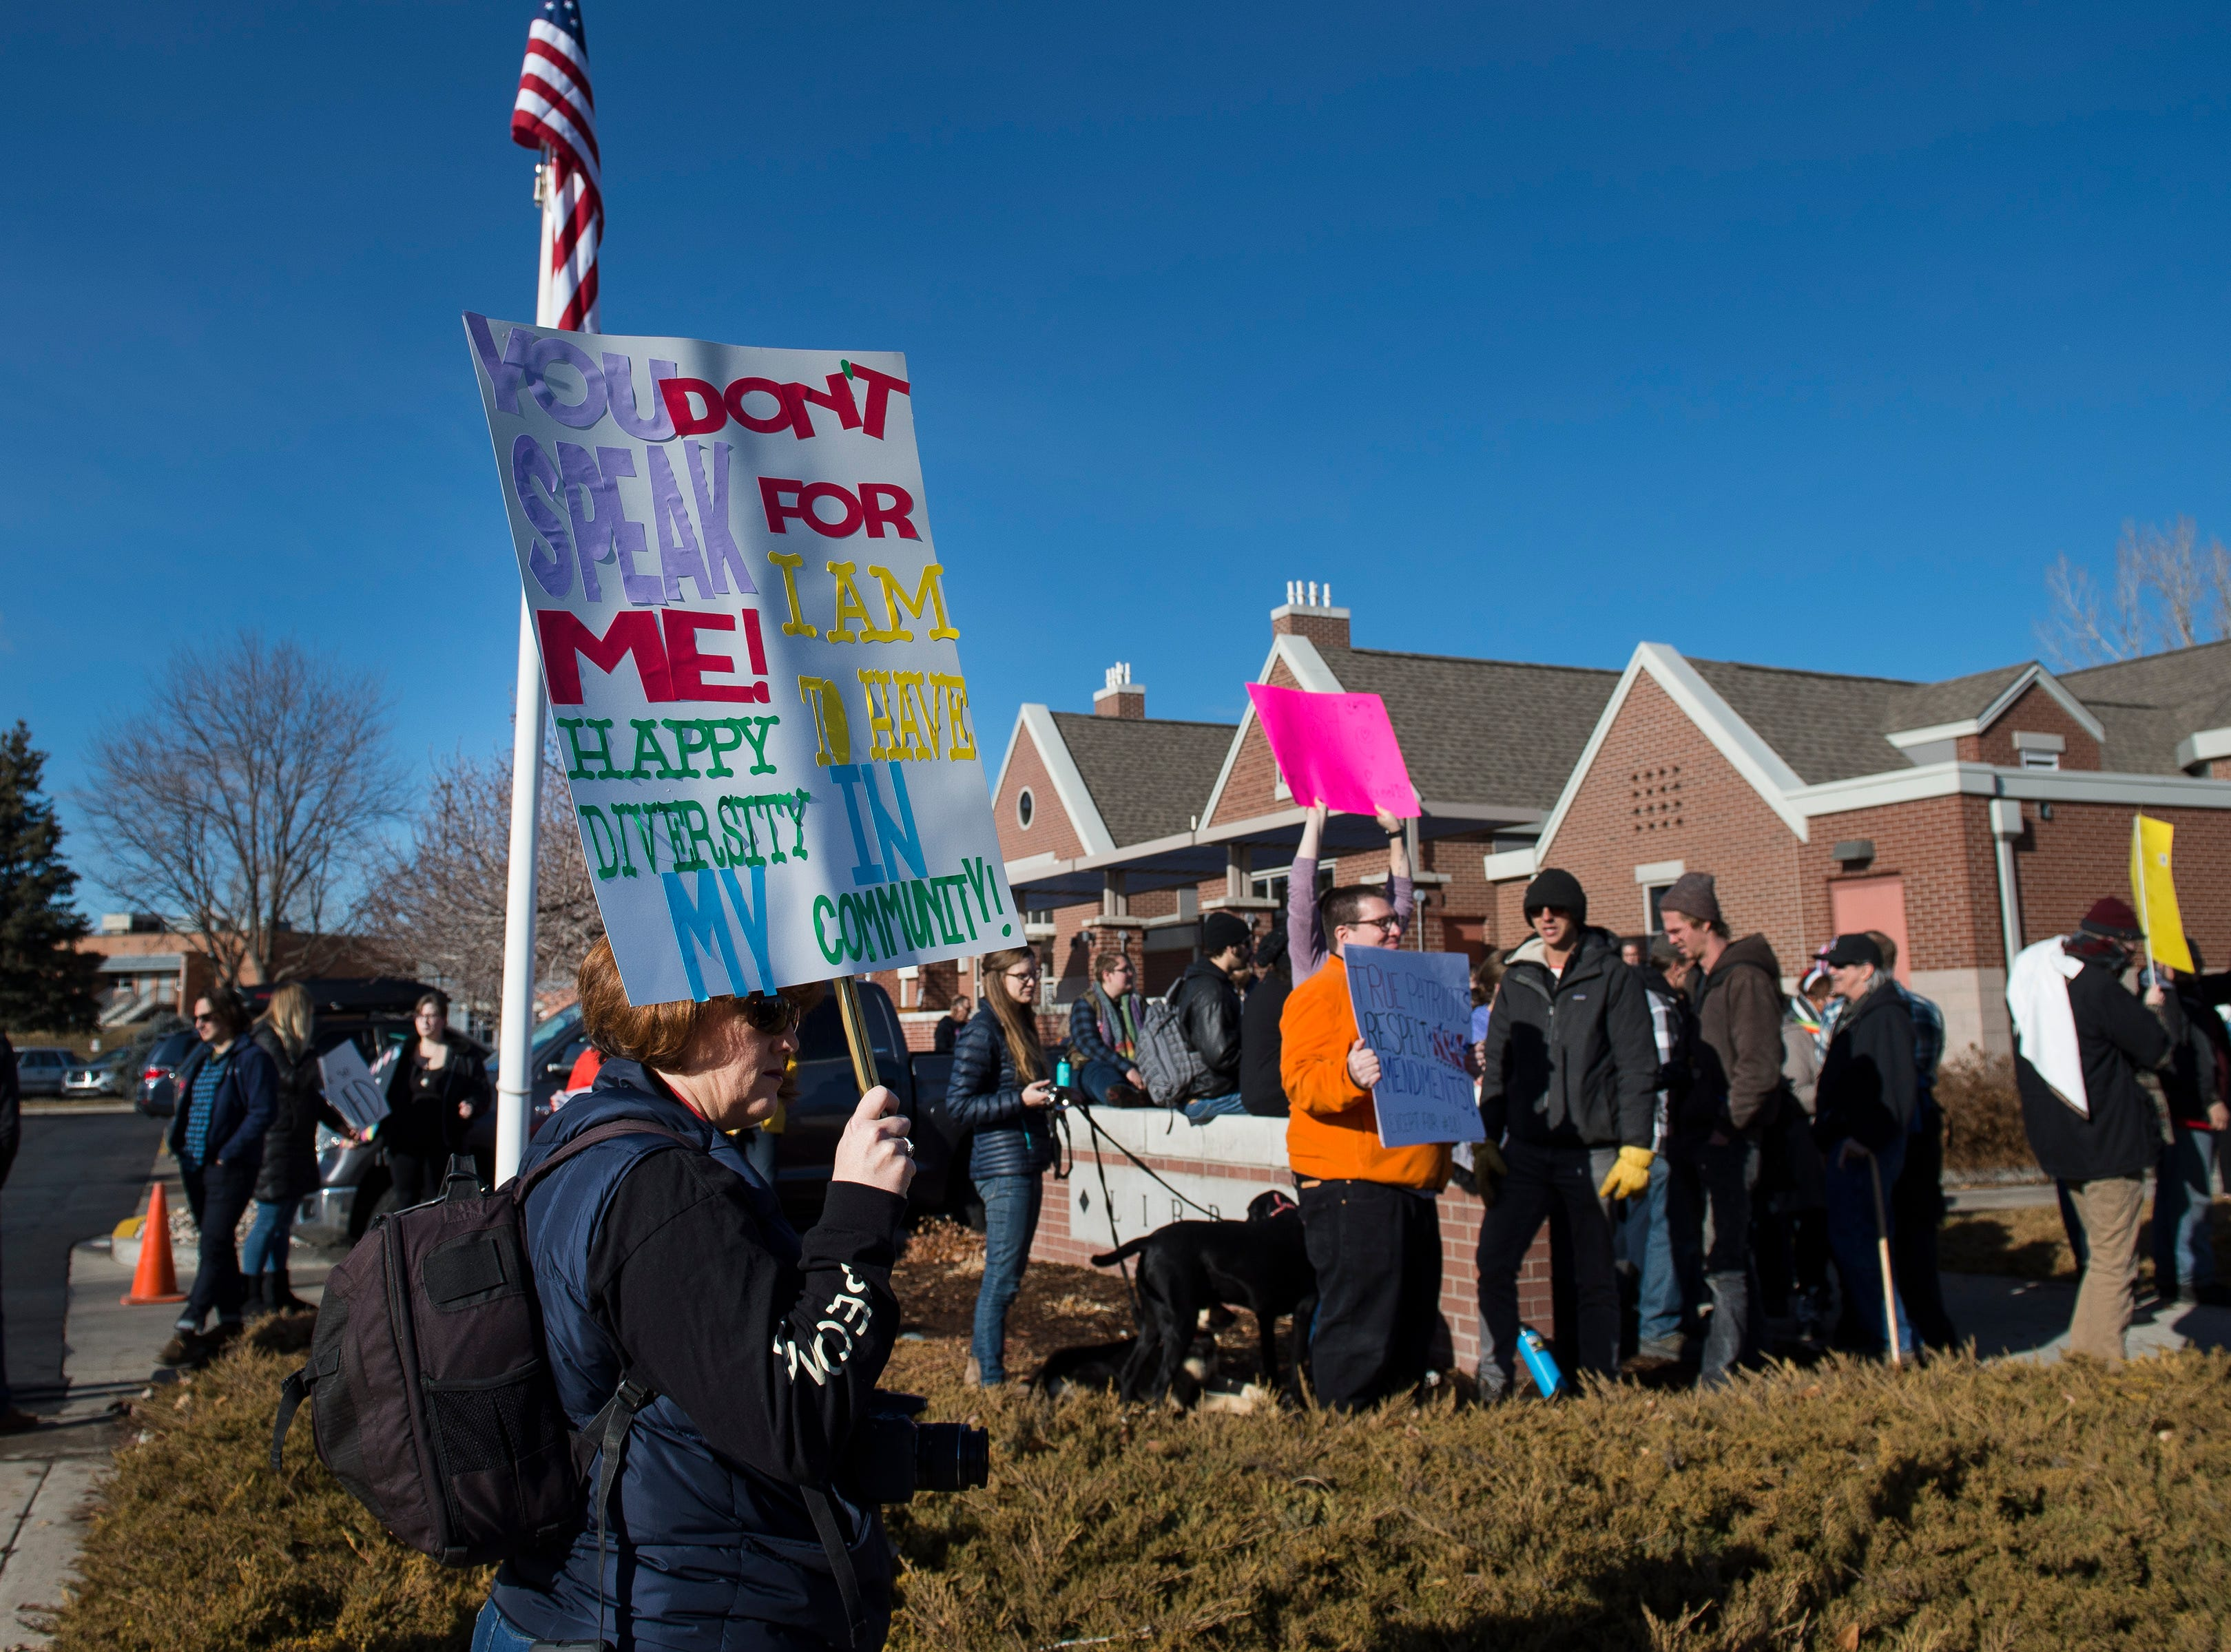 Kim Grubbs holds up a sign while protesters and counterprotesters gather outside the library before Drag Queen Story Hour on Saturday, Jan. 12, 2019, at the Clearview Public Library in Windsor, Colo. Drag Queen Story Hour is a program put on by SPLASH, an LGBTQ+ youth outreach organization.